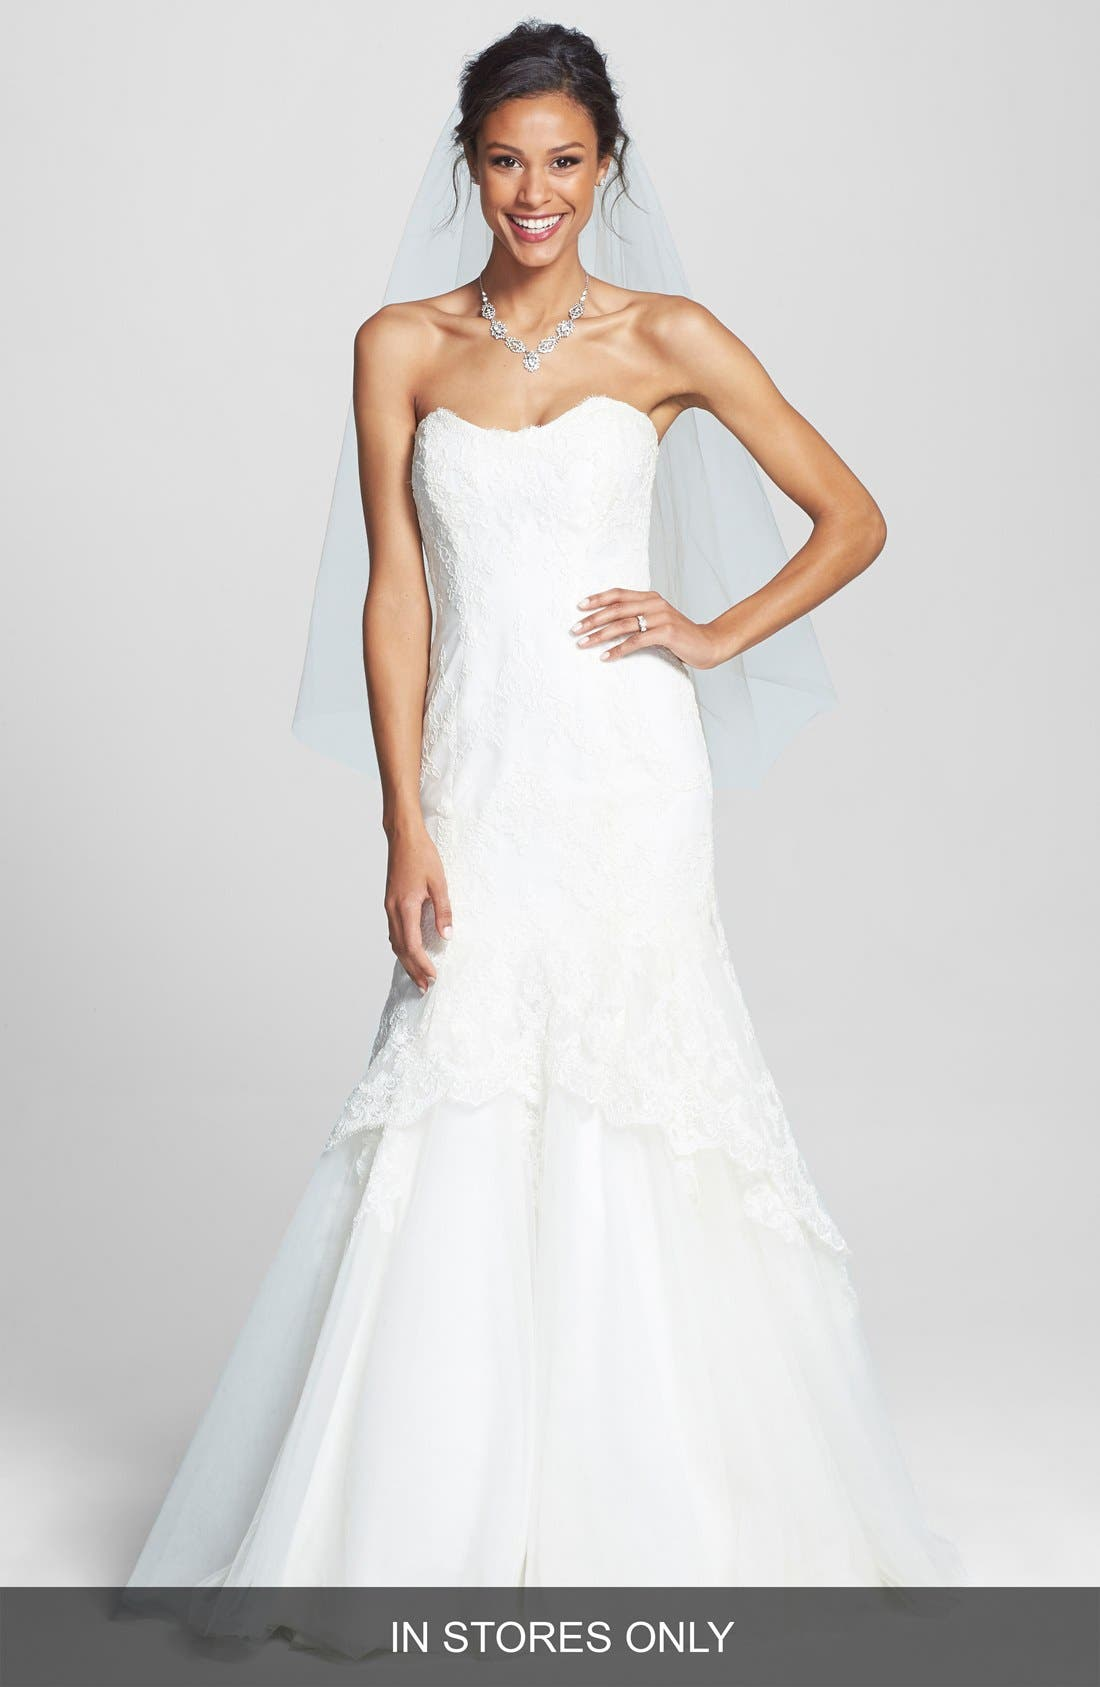 Alternate Image 1 Selected - BLISS Monique Lhuillier Lace Overlay Tulle Trumpet Wedding Dress (In Stores Only)